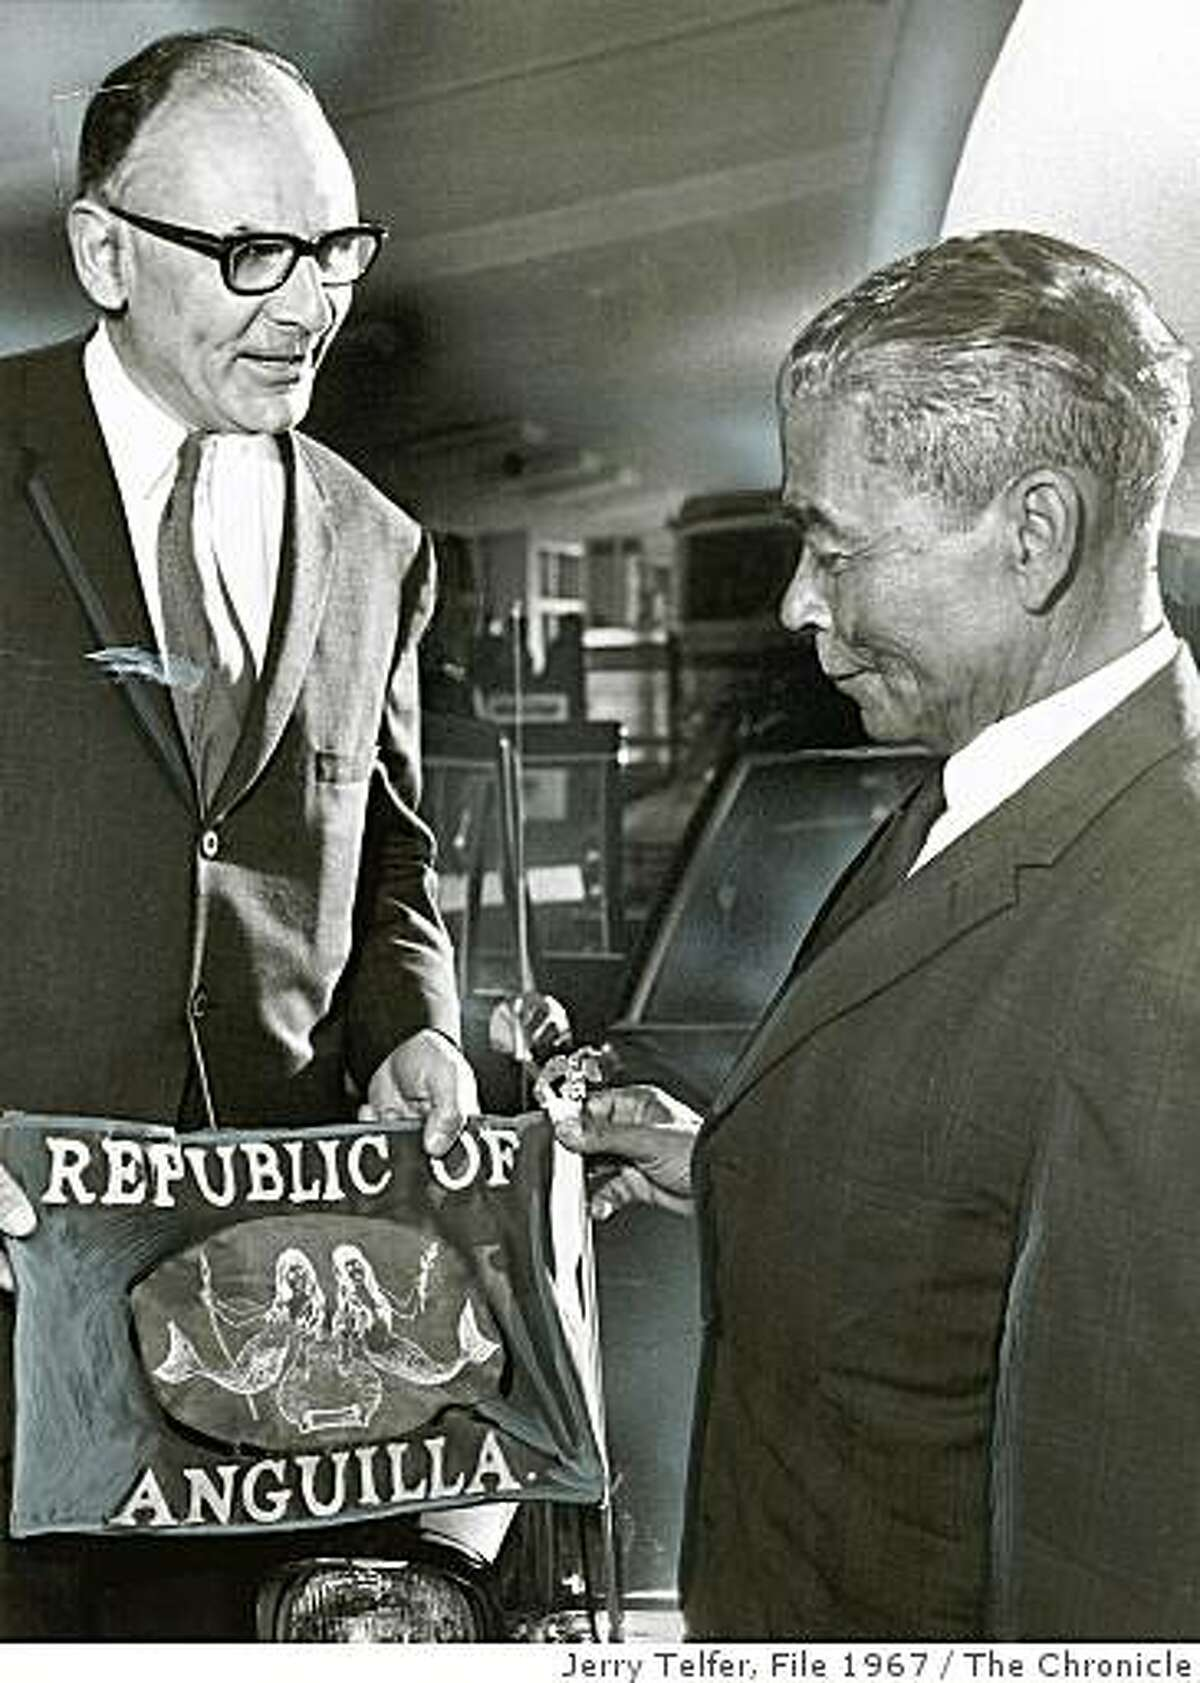 Insight21_Hinckley.jpg July 21, 1967 - Peter Tamaras, Acting Mayor of San Francisco, and Peter Adams, President of the Republic of Anguilla, looking at Anguillan flag in front of VIP car.Jerry Telfer Chronicle File